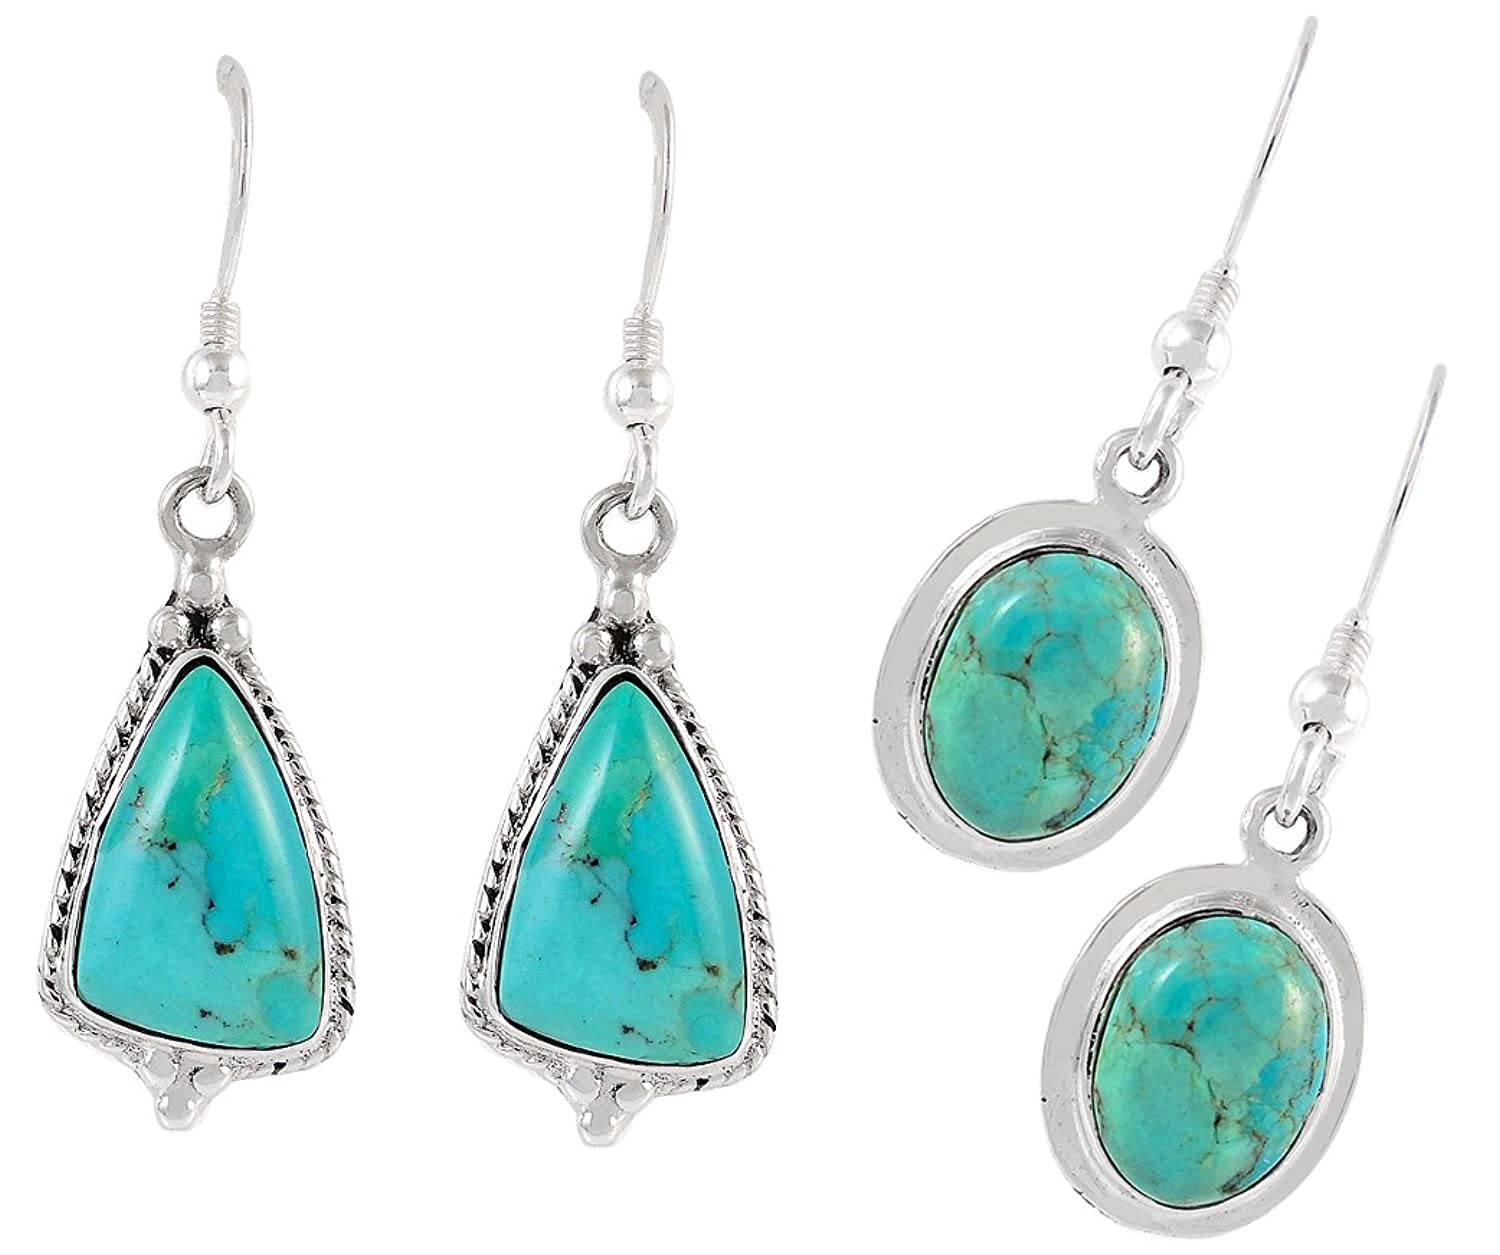 Turquoise Earrings in 925 Sterling Silver & Genuine Gemstones (TWO pairs included)